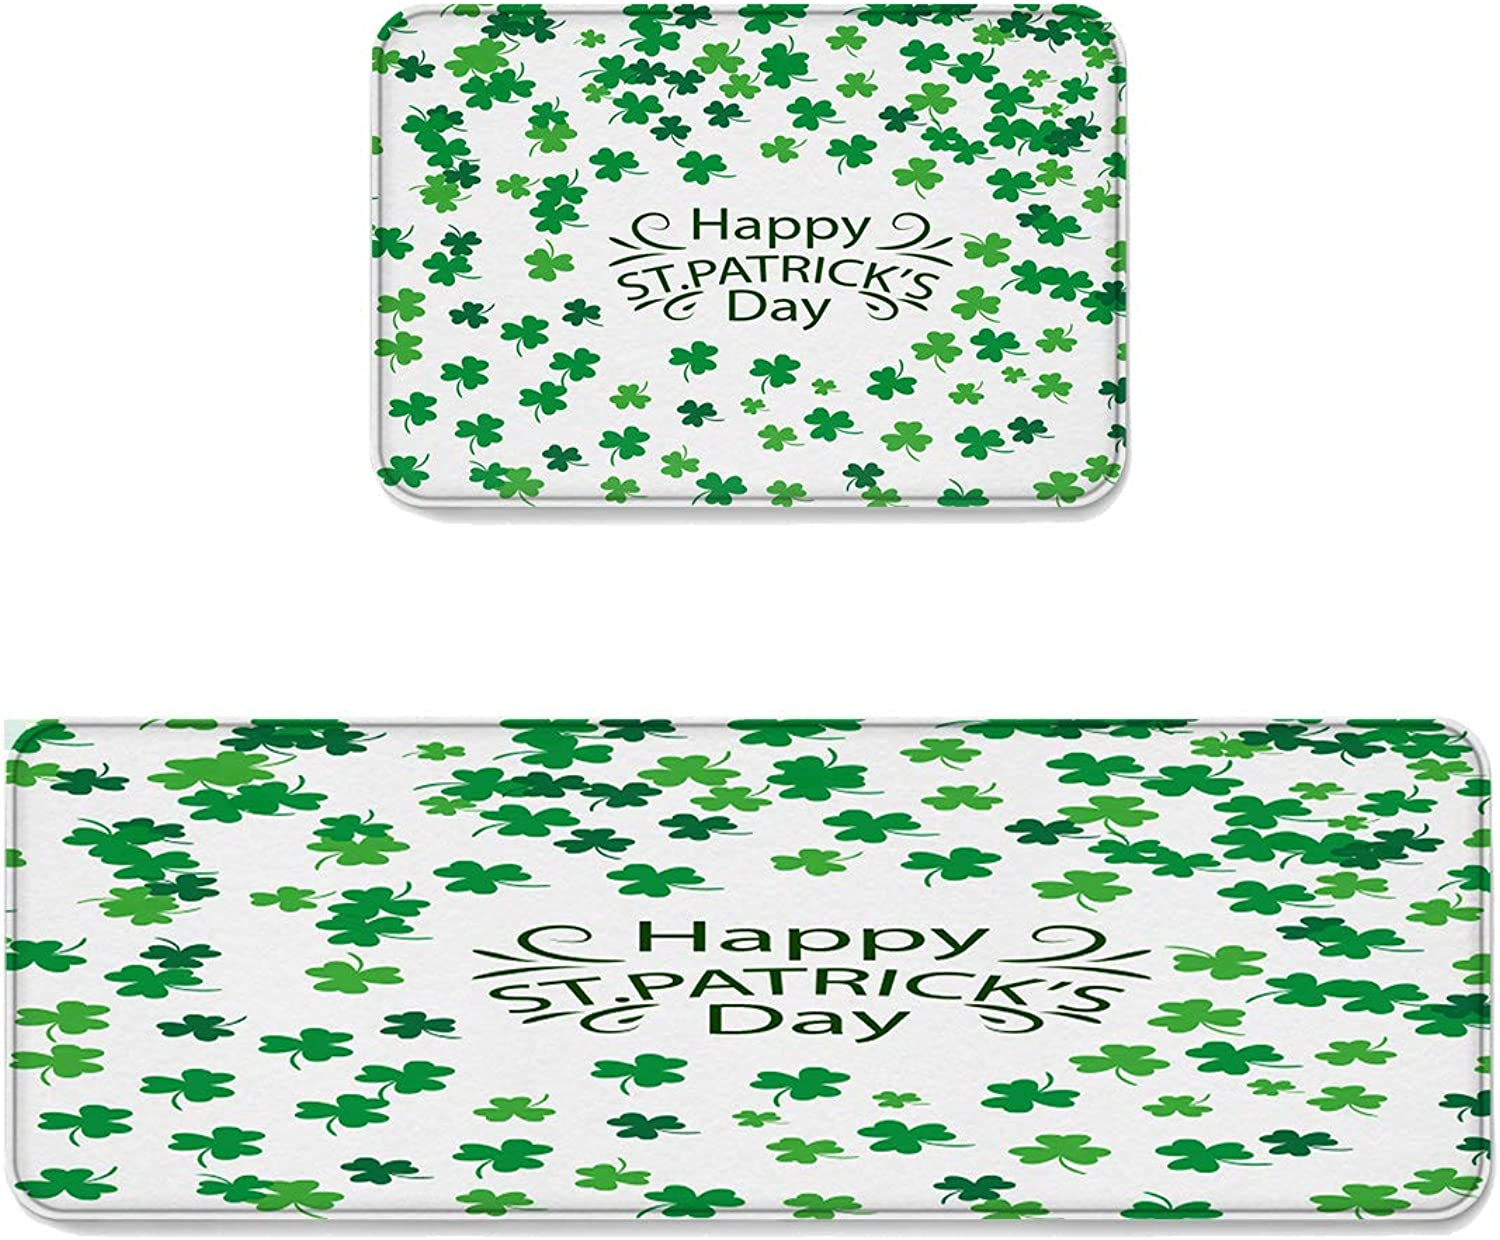 Kitchen Rug Sets 2 Piece Floor Mats Non-Slip Rubber Backing Area Rugs Happy St Patrick's Day Simple Shamrock Pattern Doormat Washable Carpet Inside Door Mat Pad Sets (19.7  x 31.5 +19.7  x 47.2 )